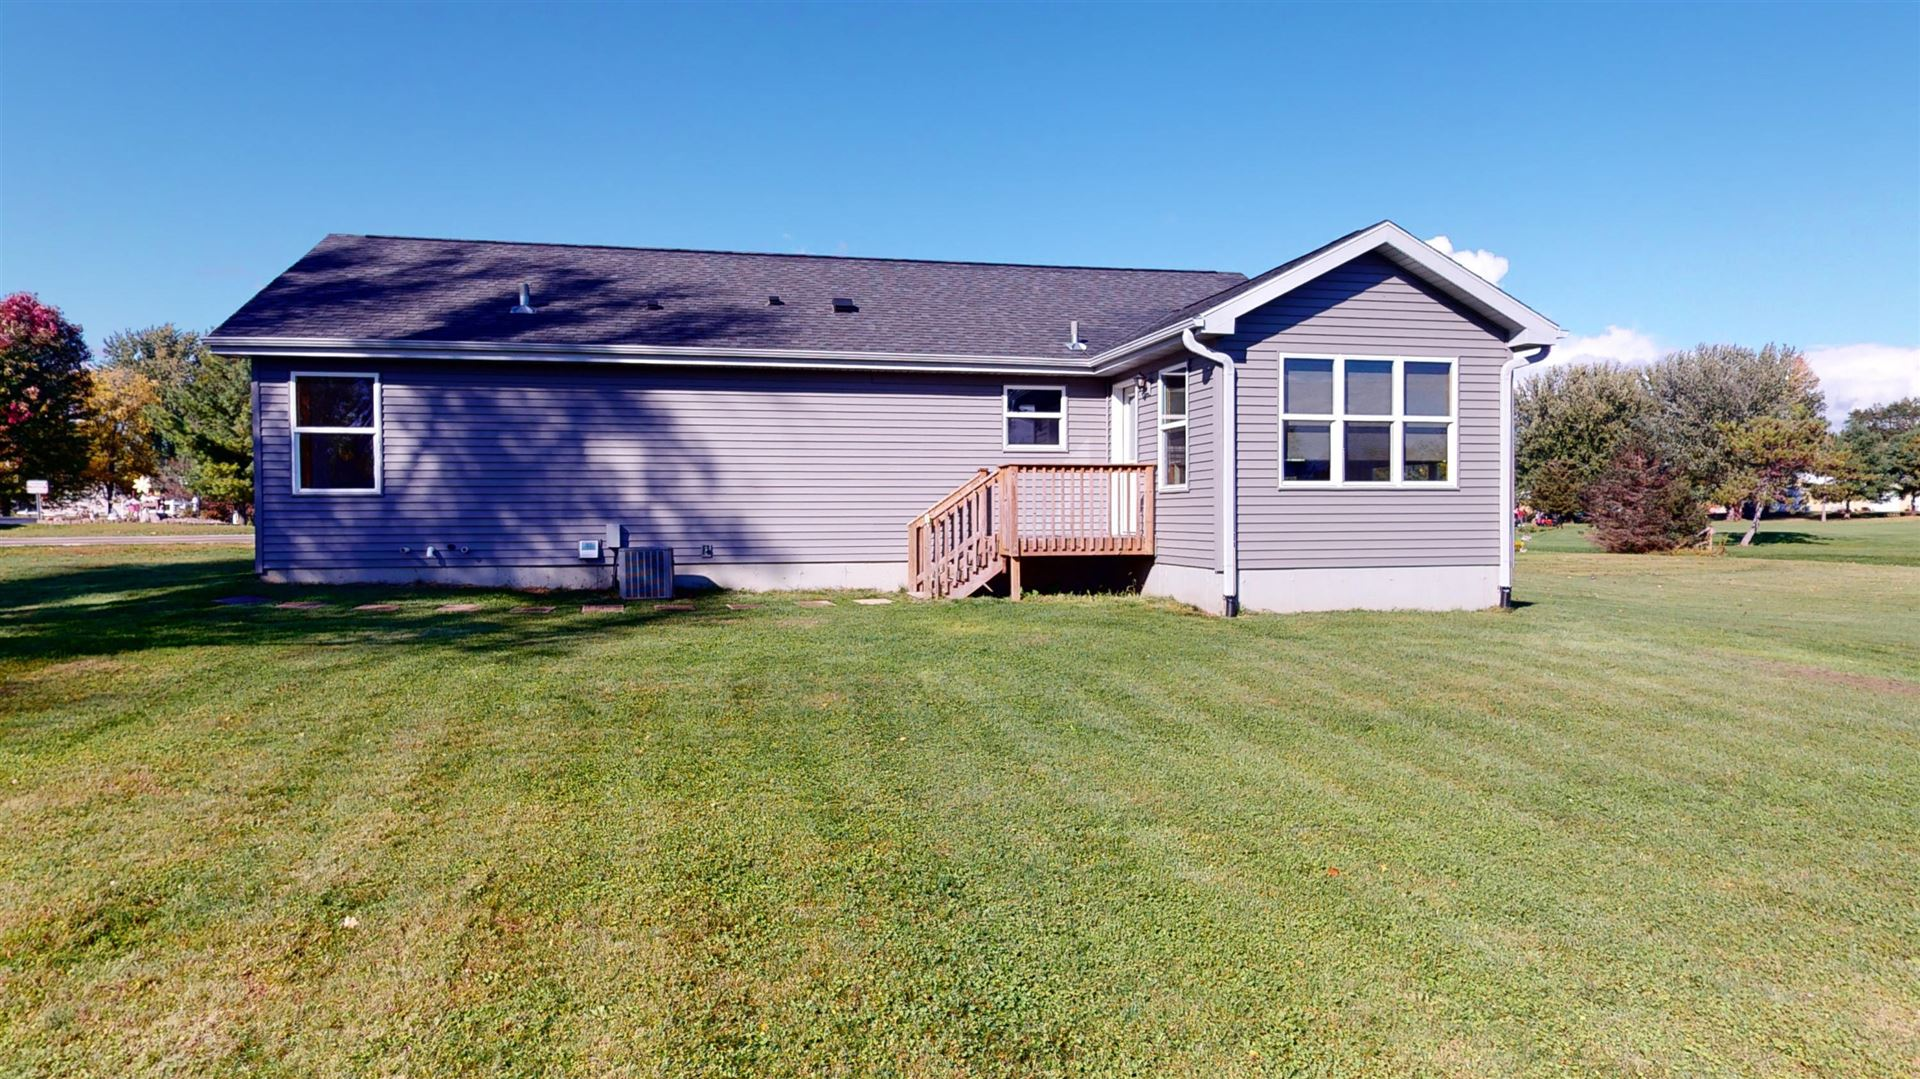 22760 Summit St, Ettrick, WI 54627 - MLS#: 1712814